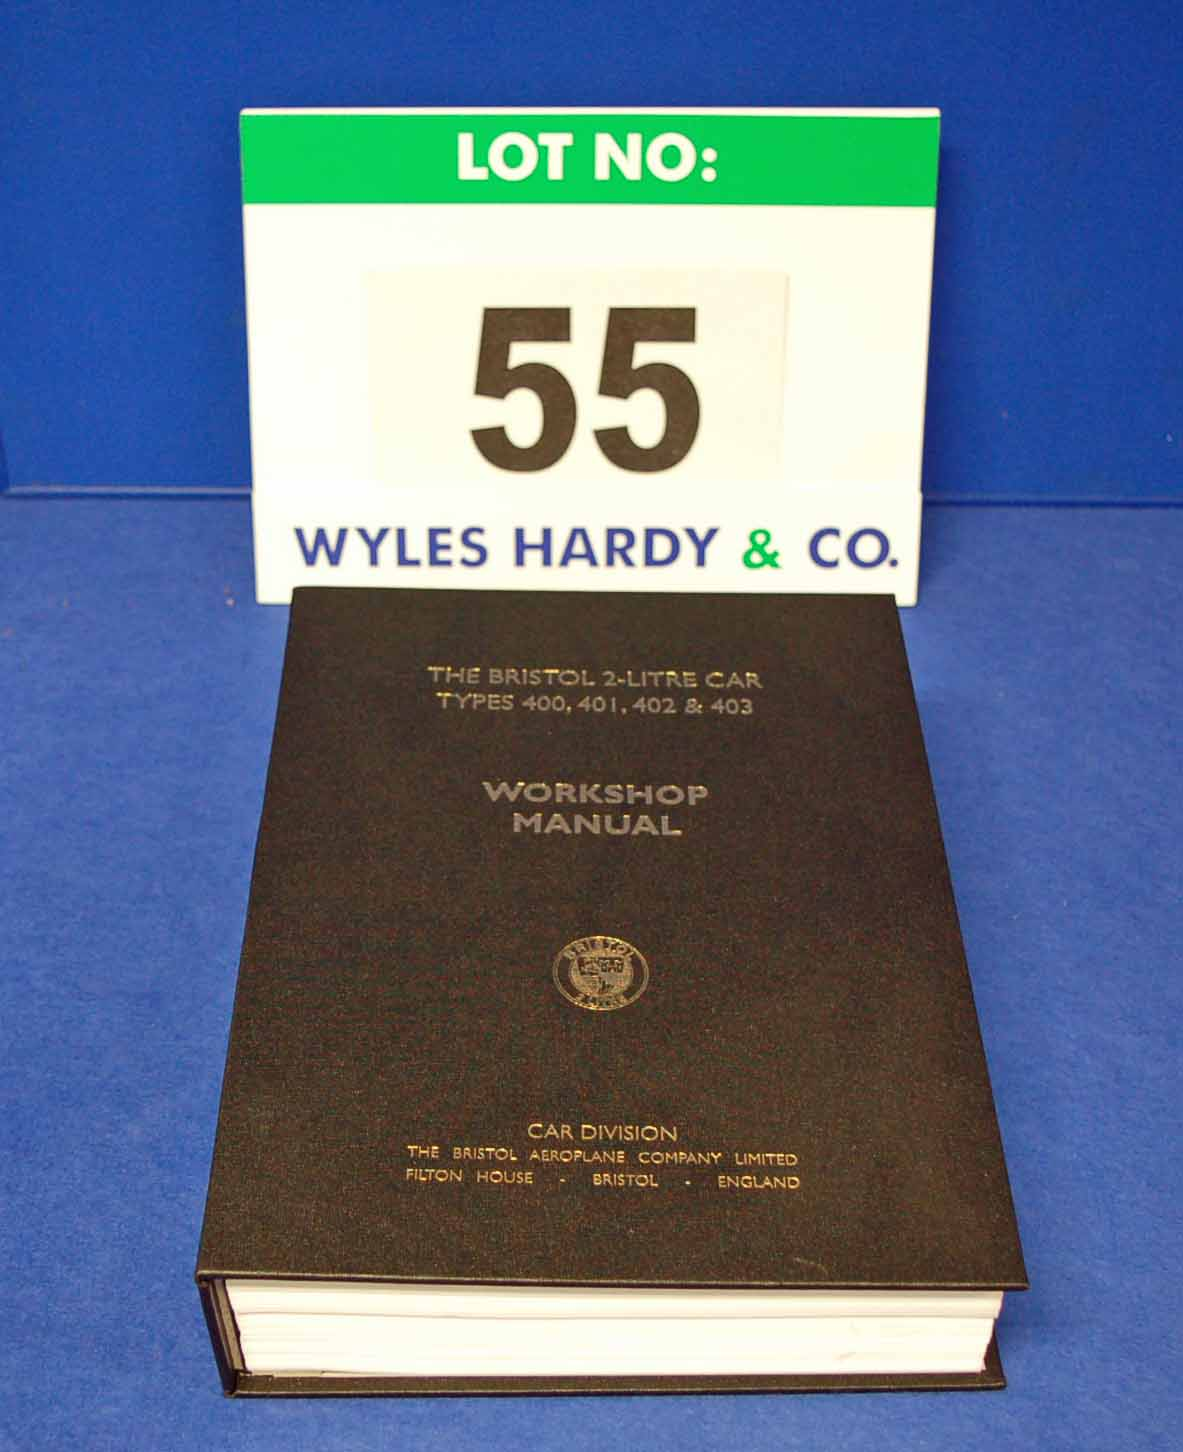 A Copy of The Bristol 2-Litre Car Types 400, 401, 402 and 403 Workshop Manual (New/Unused)